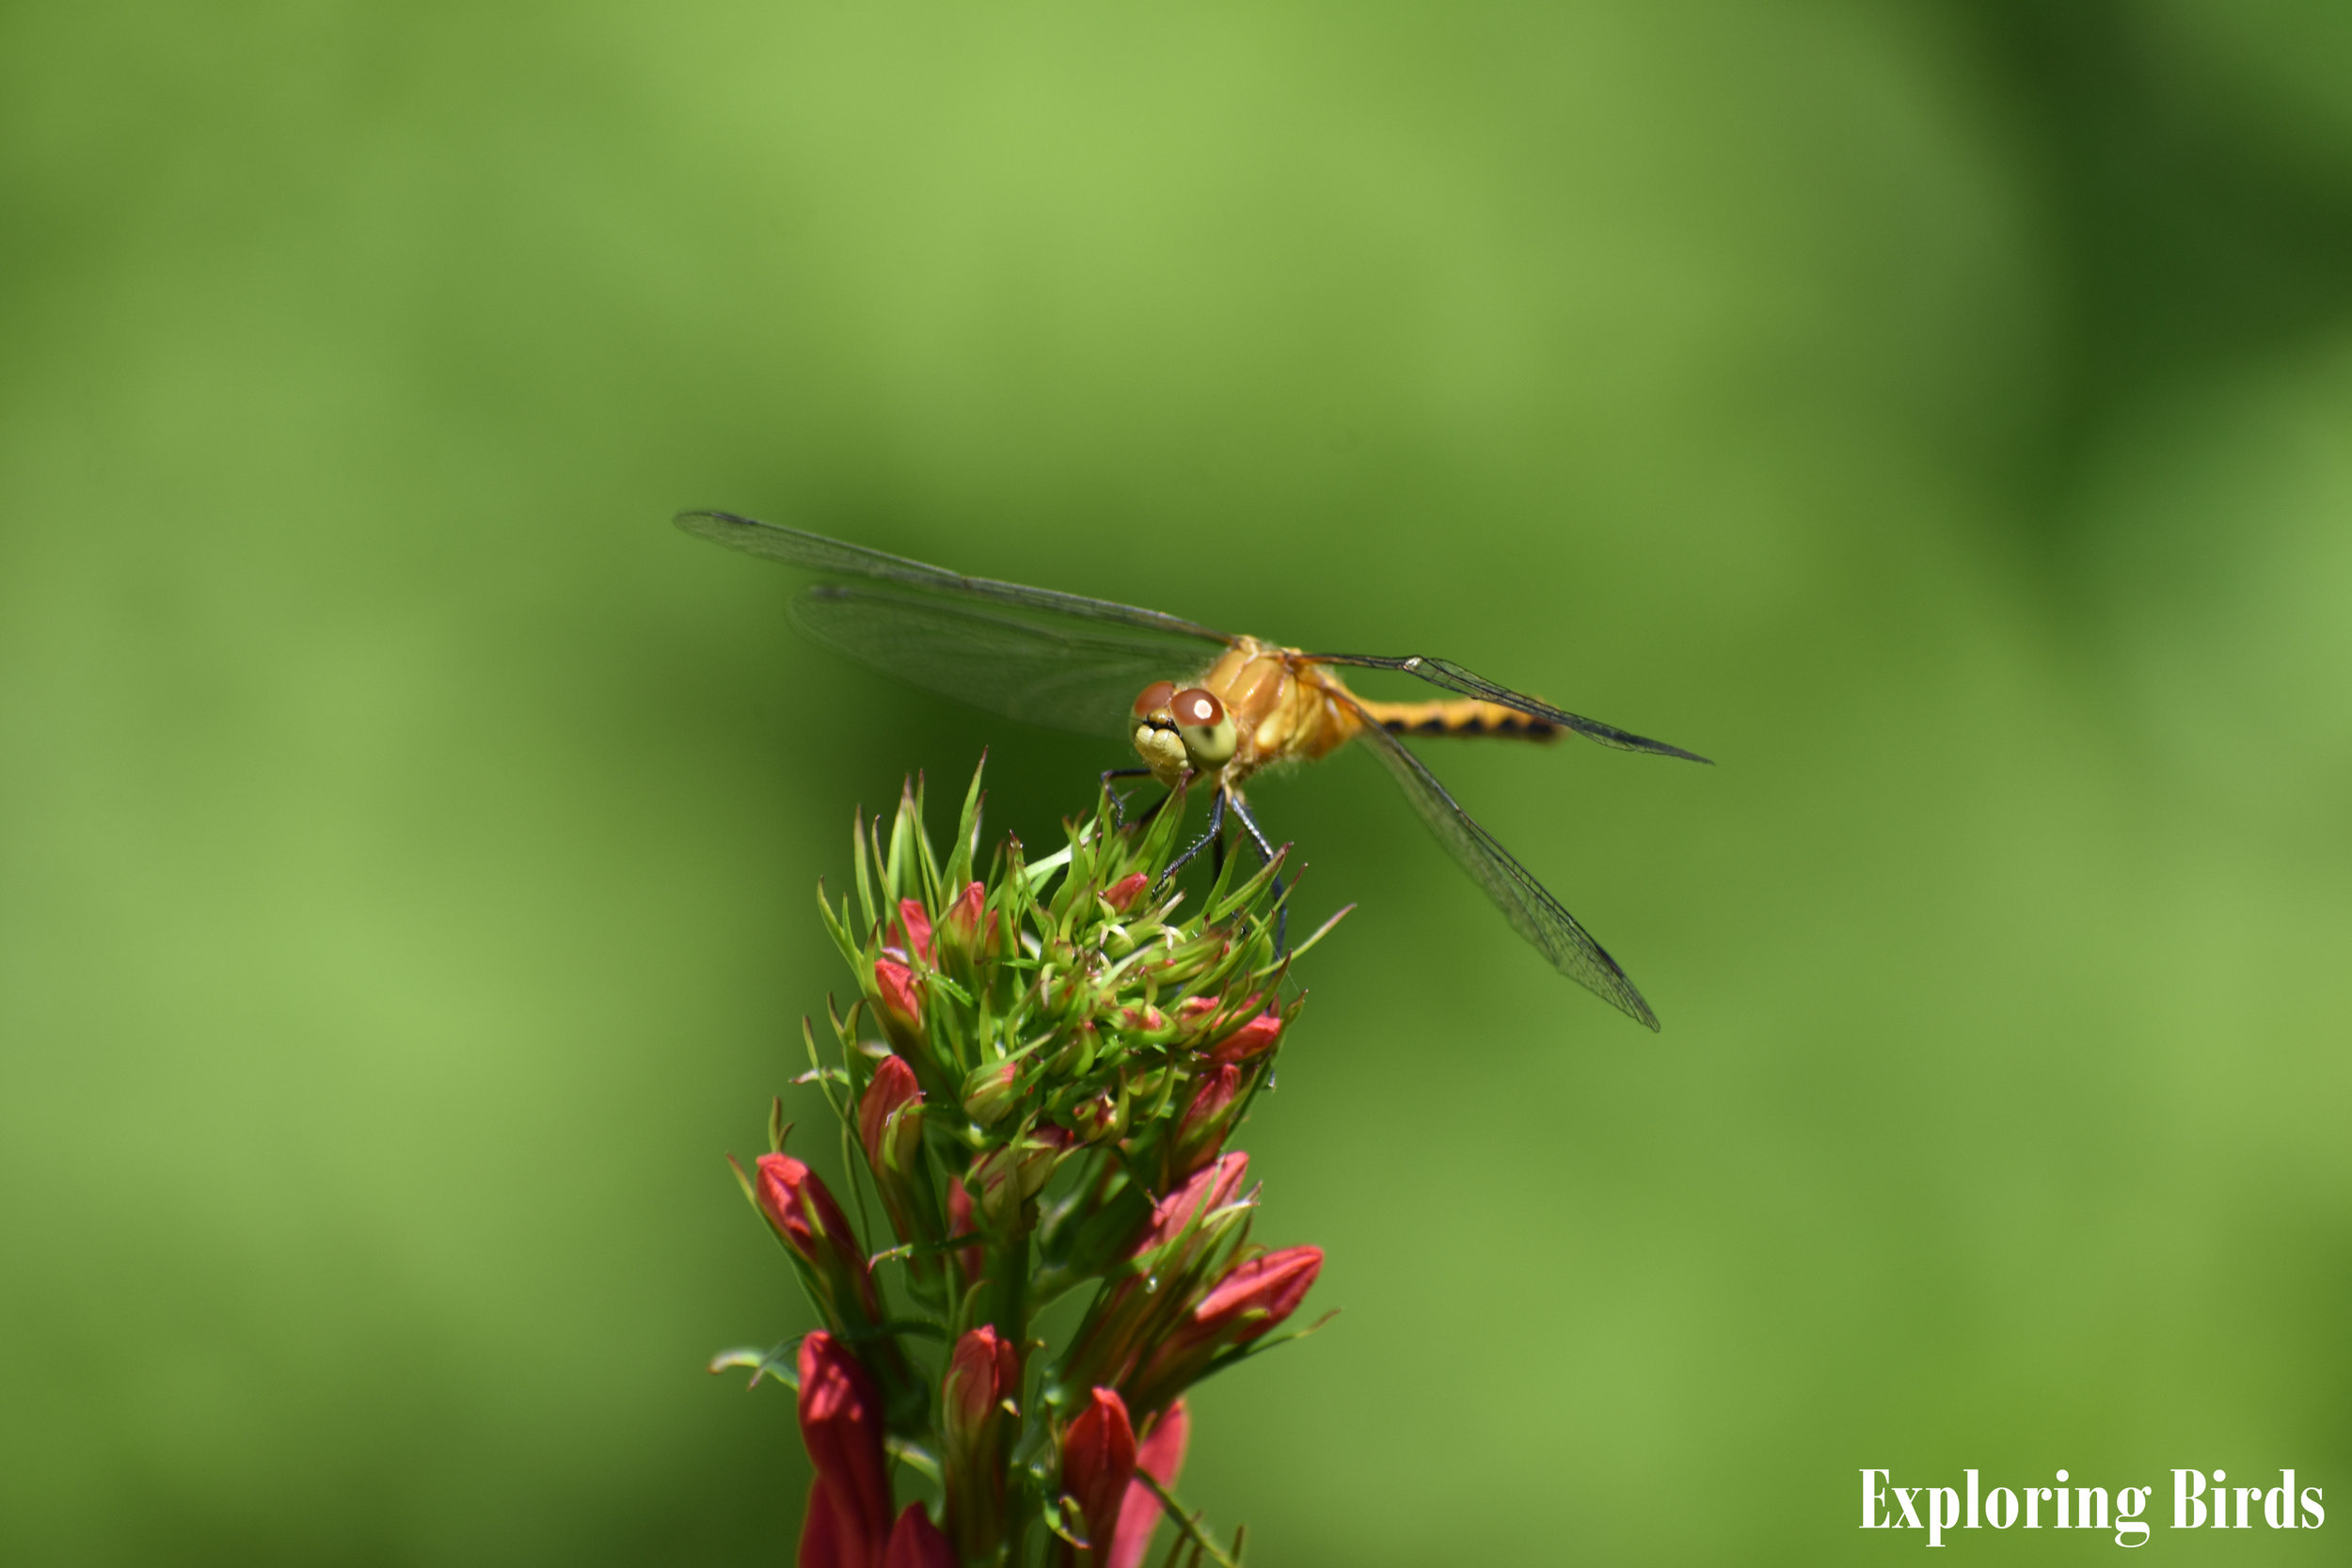 Cardinal Flower attracts insects